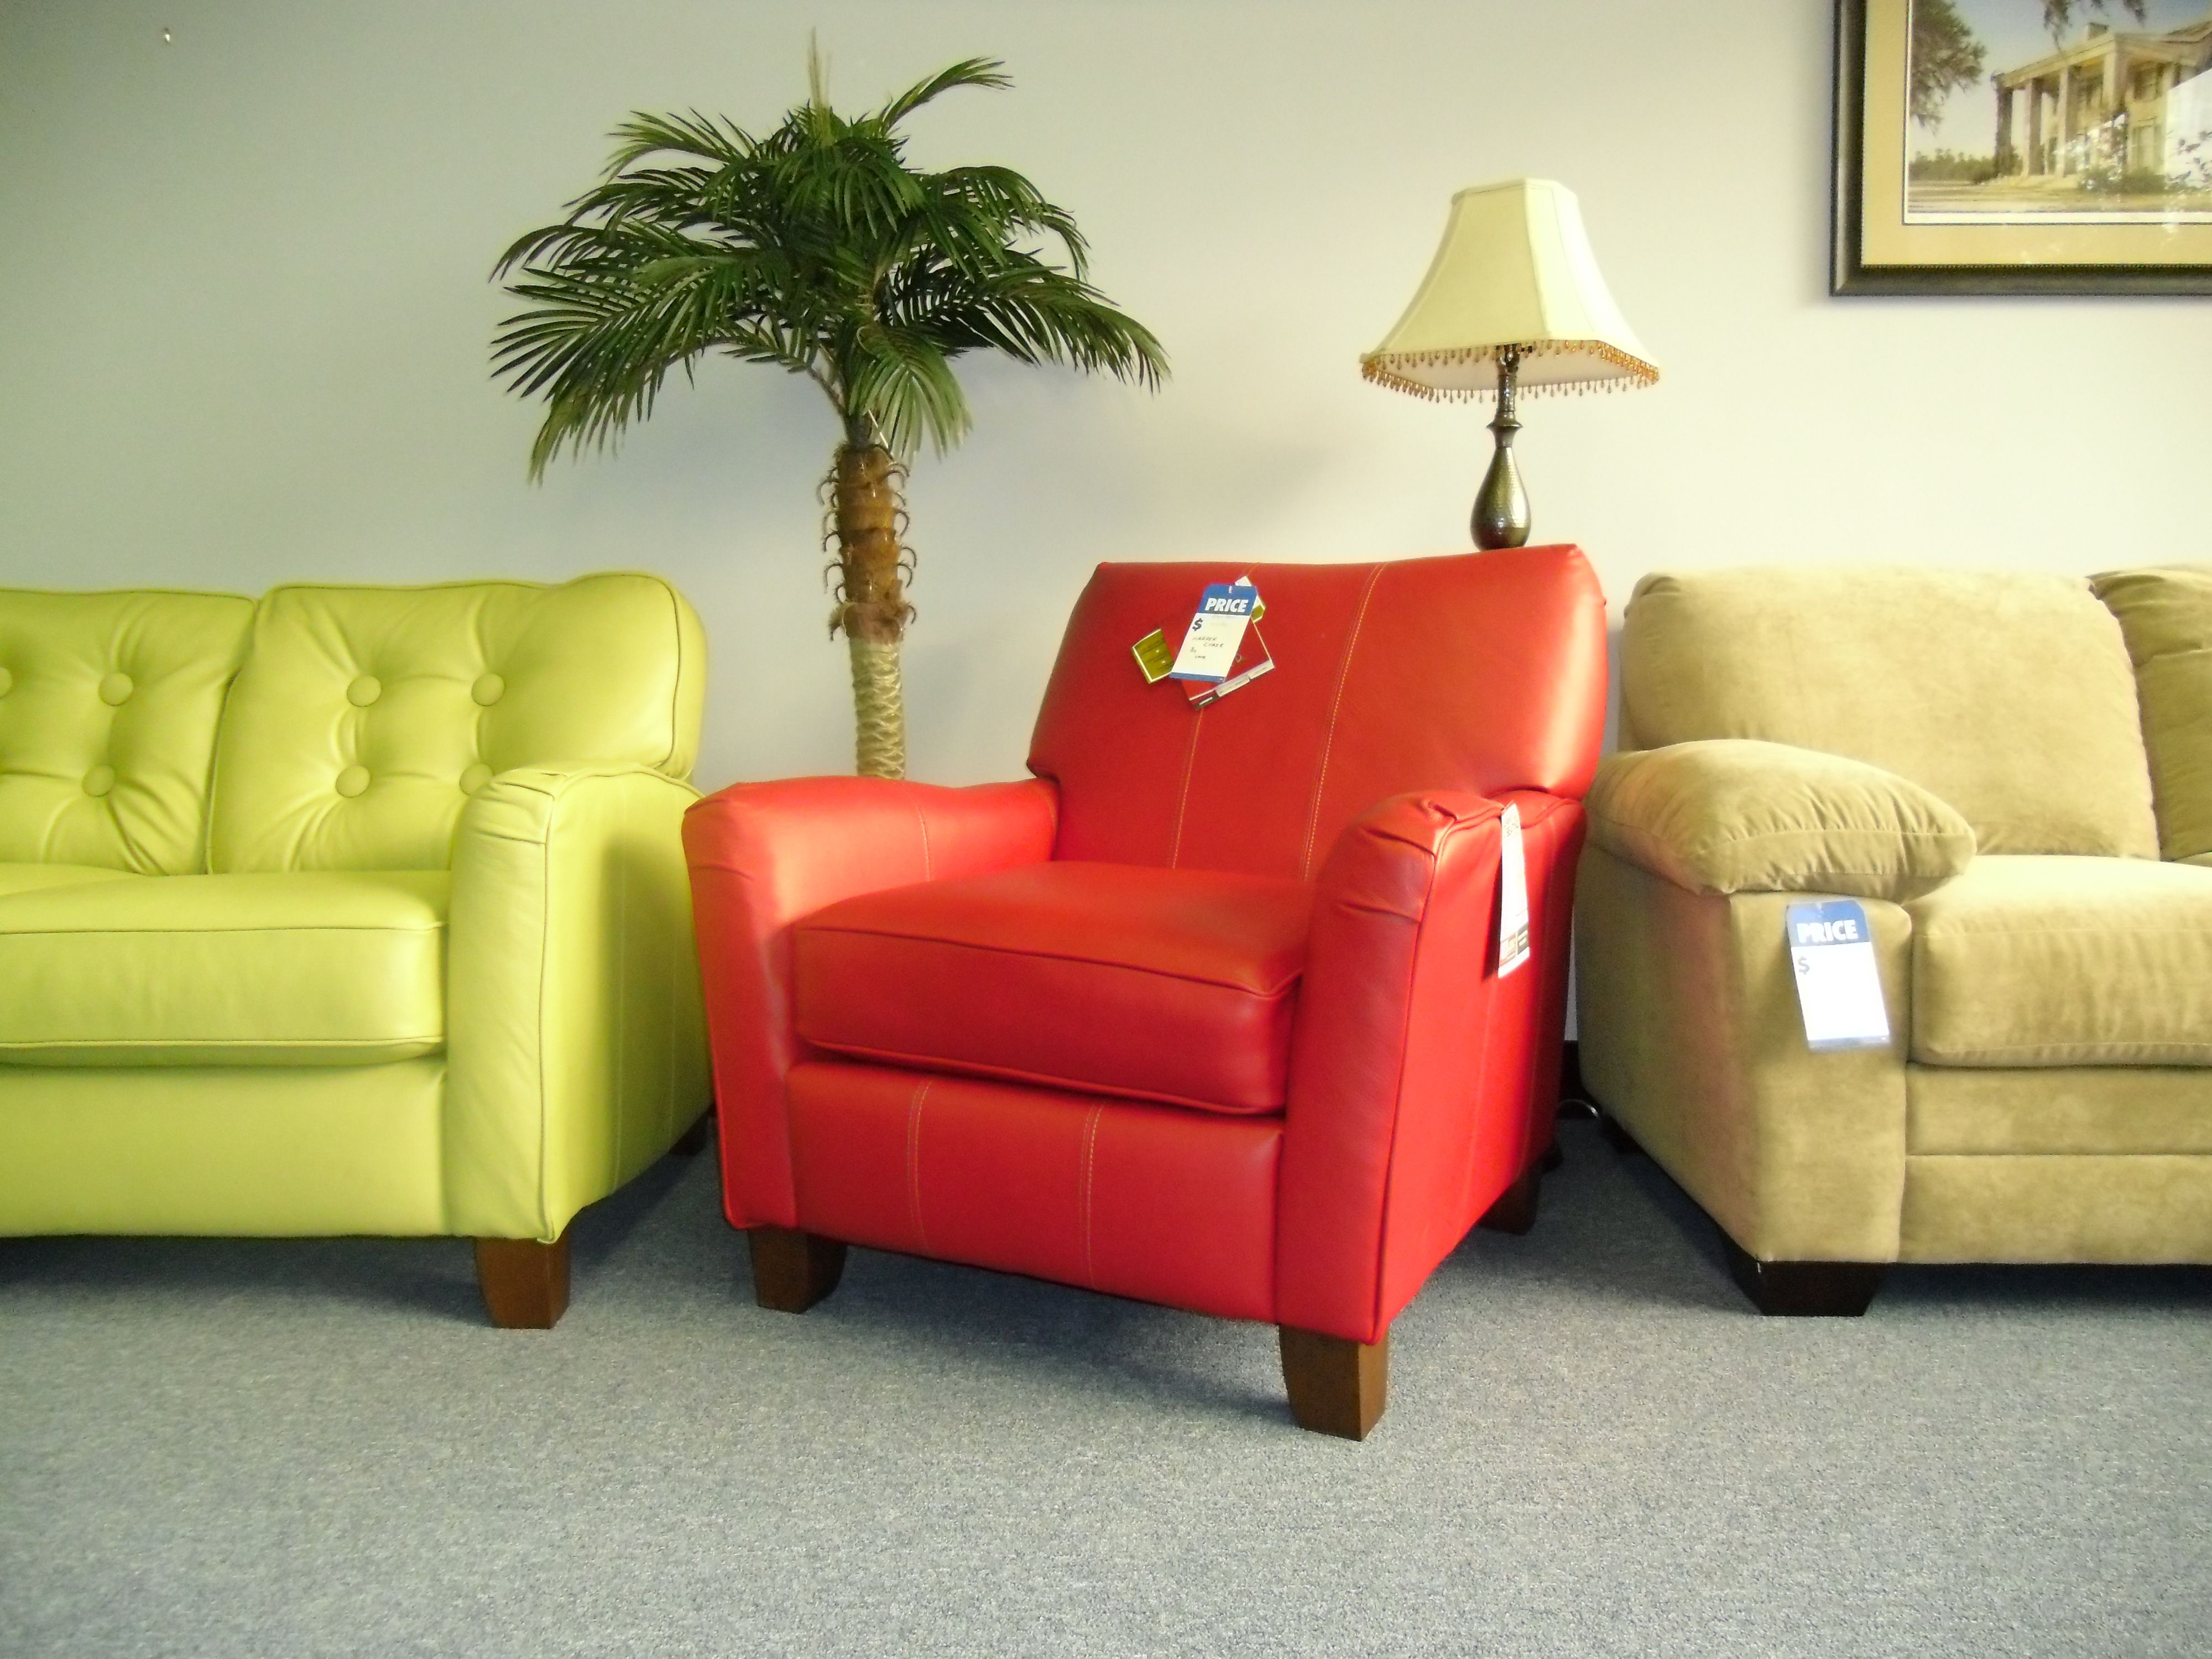 Bright Green Orange Red Neon Leather Furniture By Lane